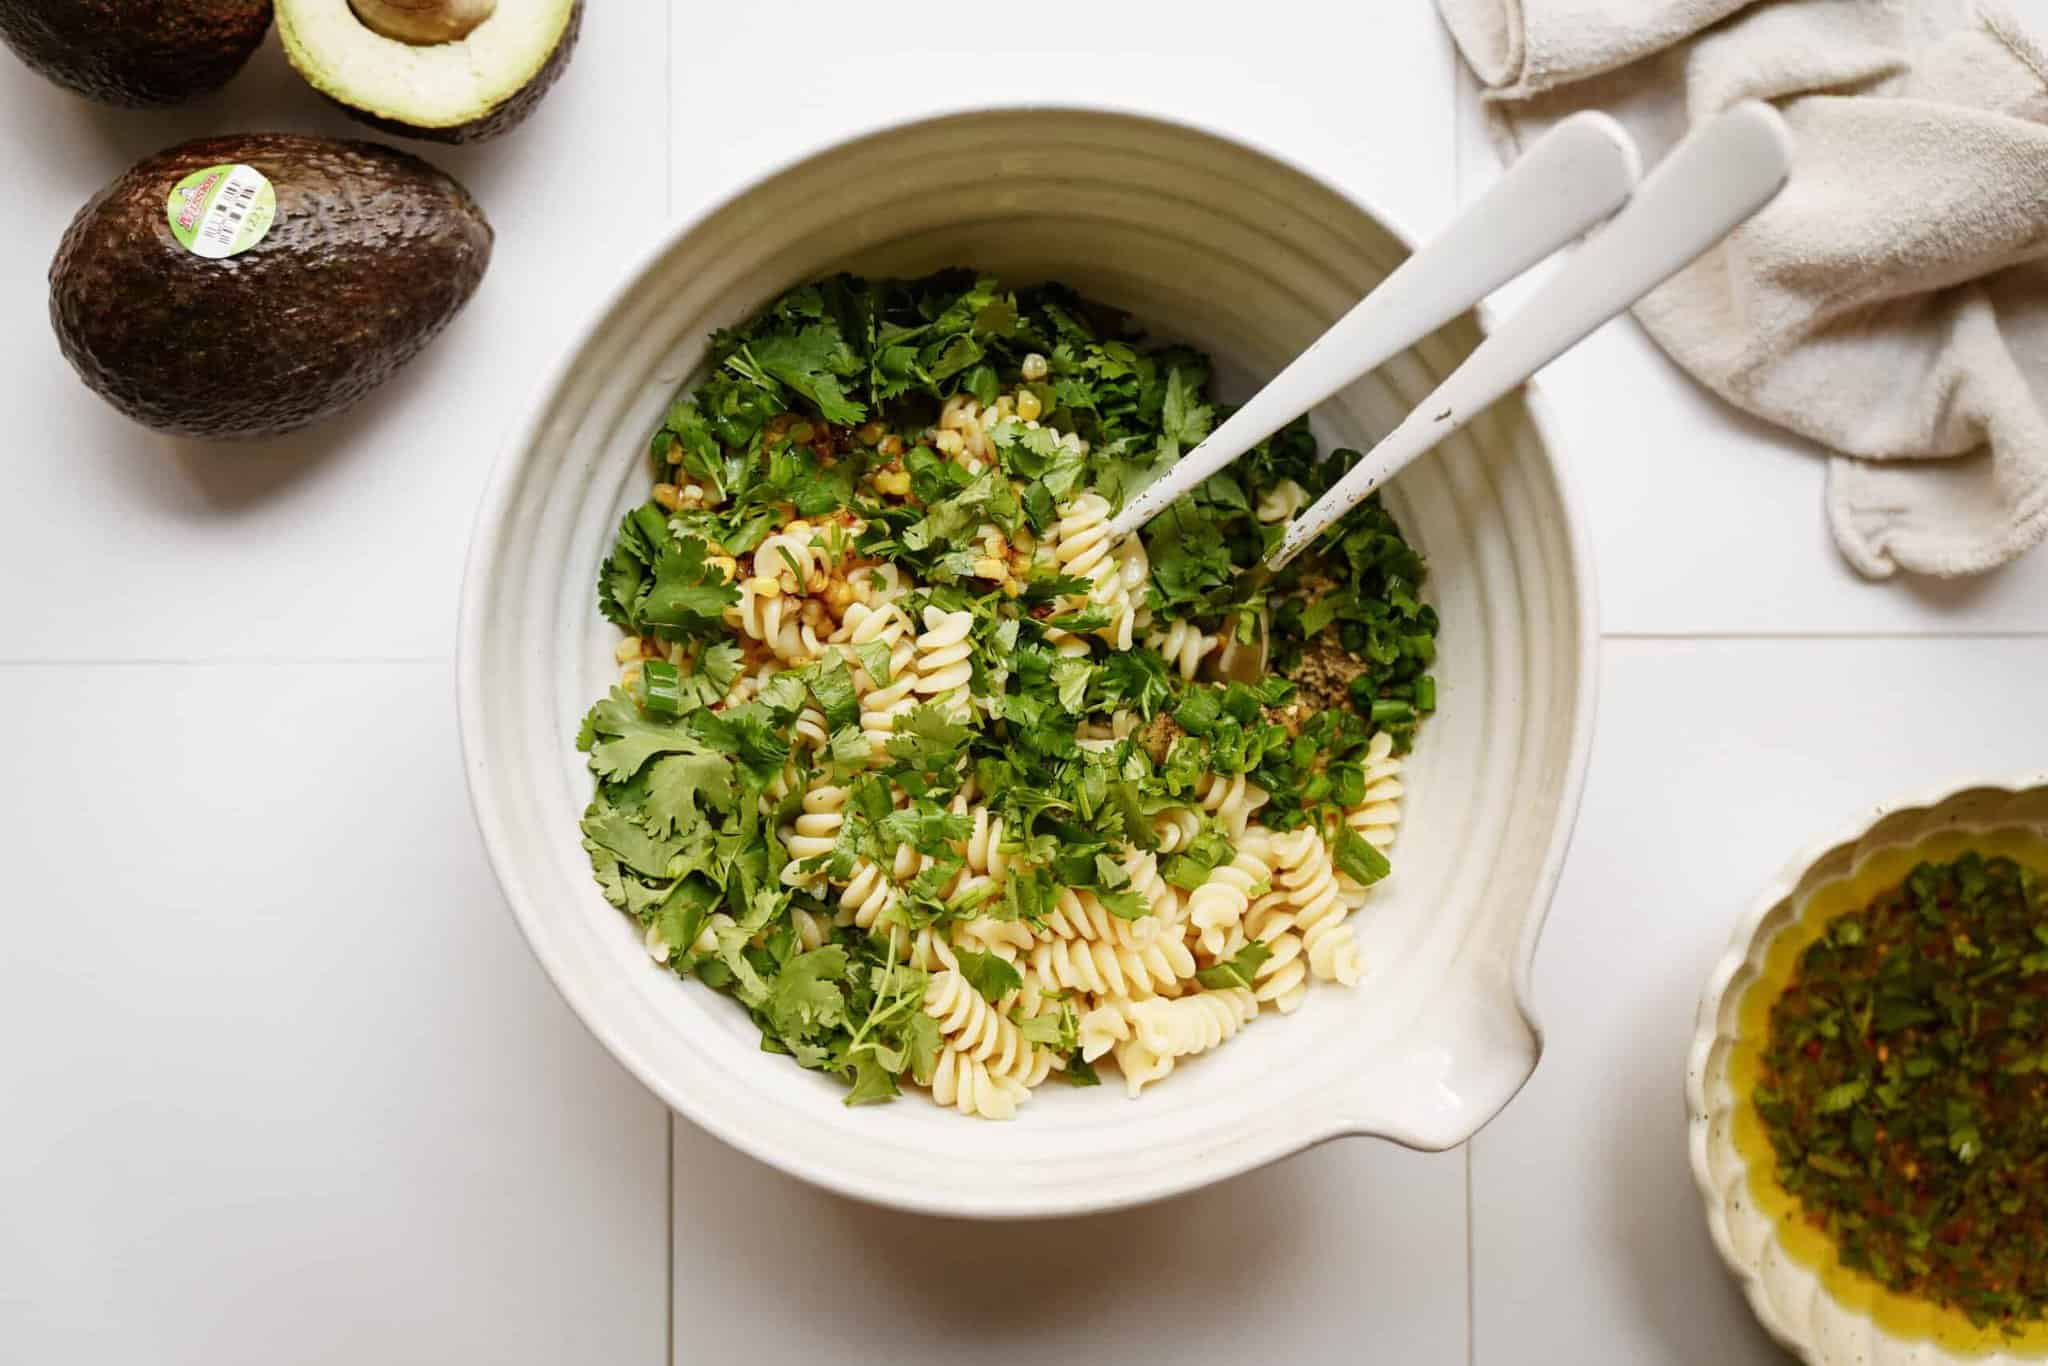 Pasta with herbs in bowl for avocado pasta salad